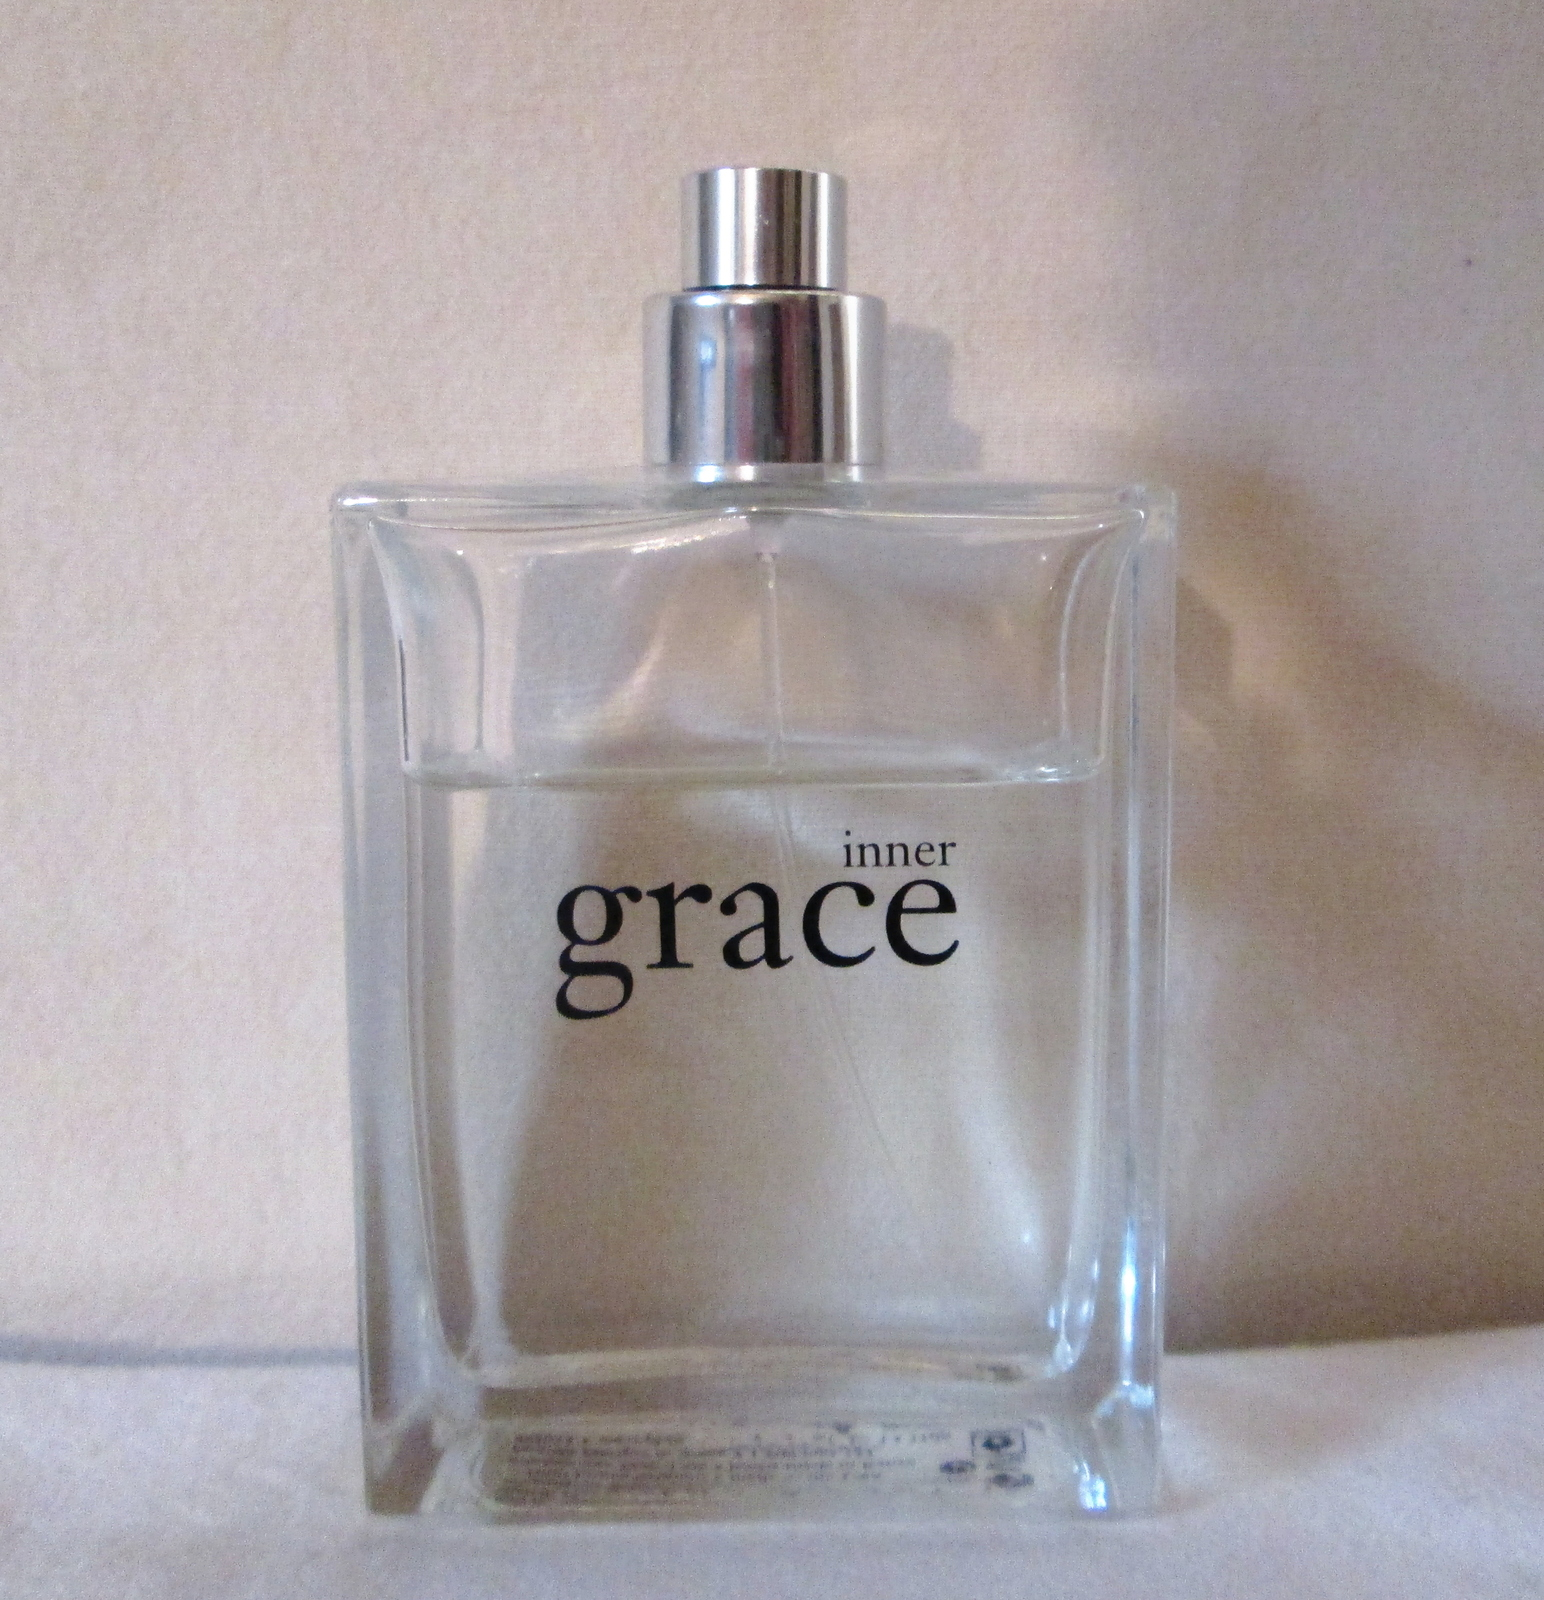 Vintage Philosophy INNER GRACE EDP 4 oz  Pre Coty, Disc, Used ~75% Full